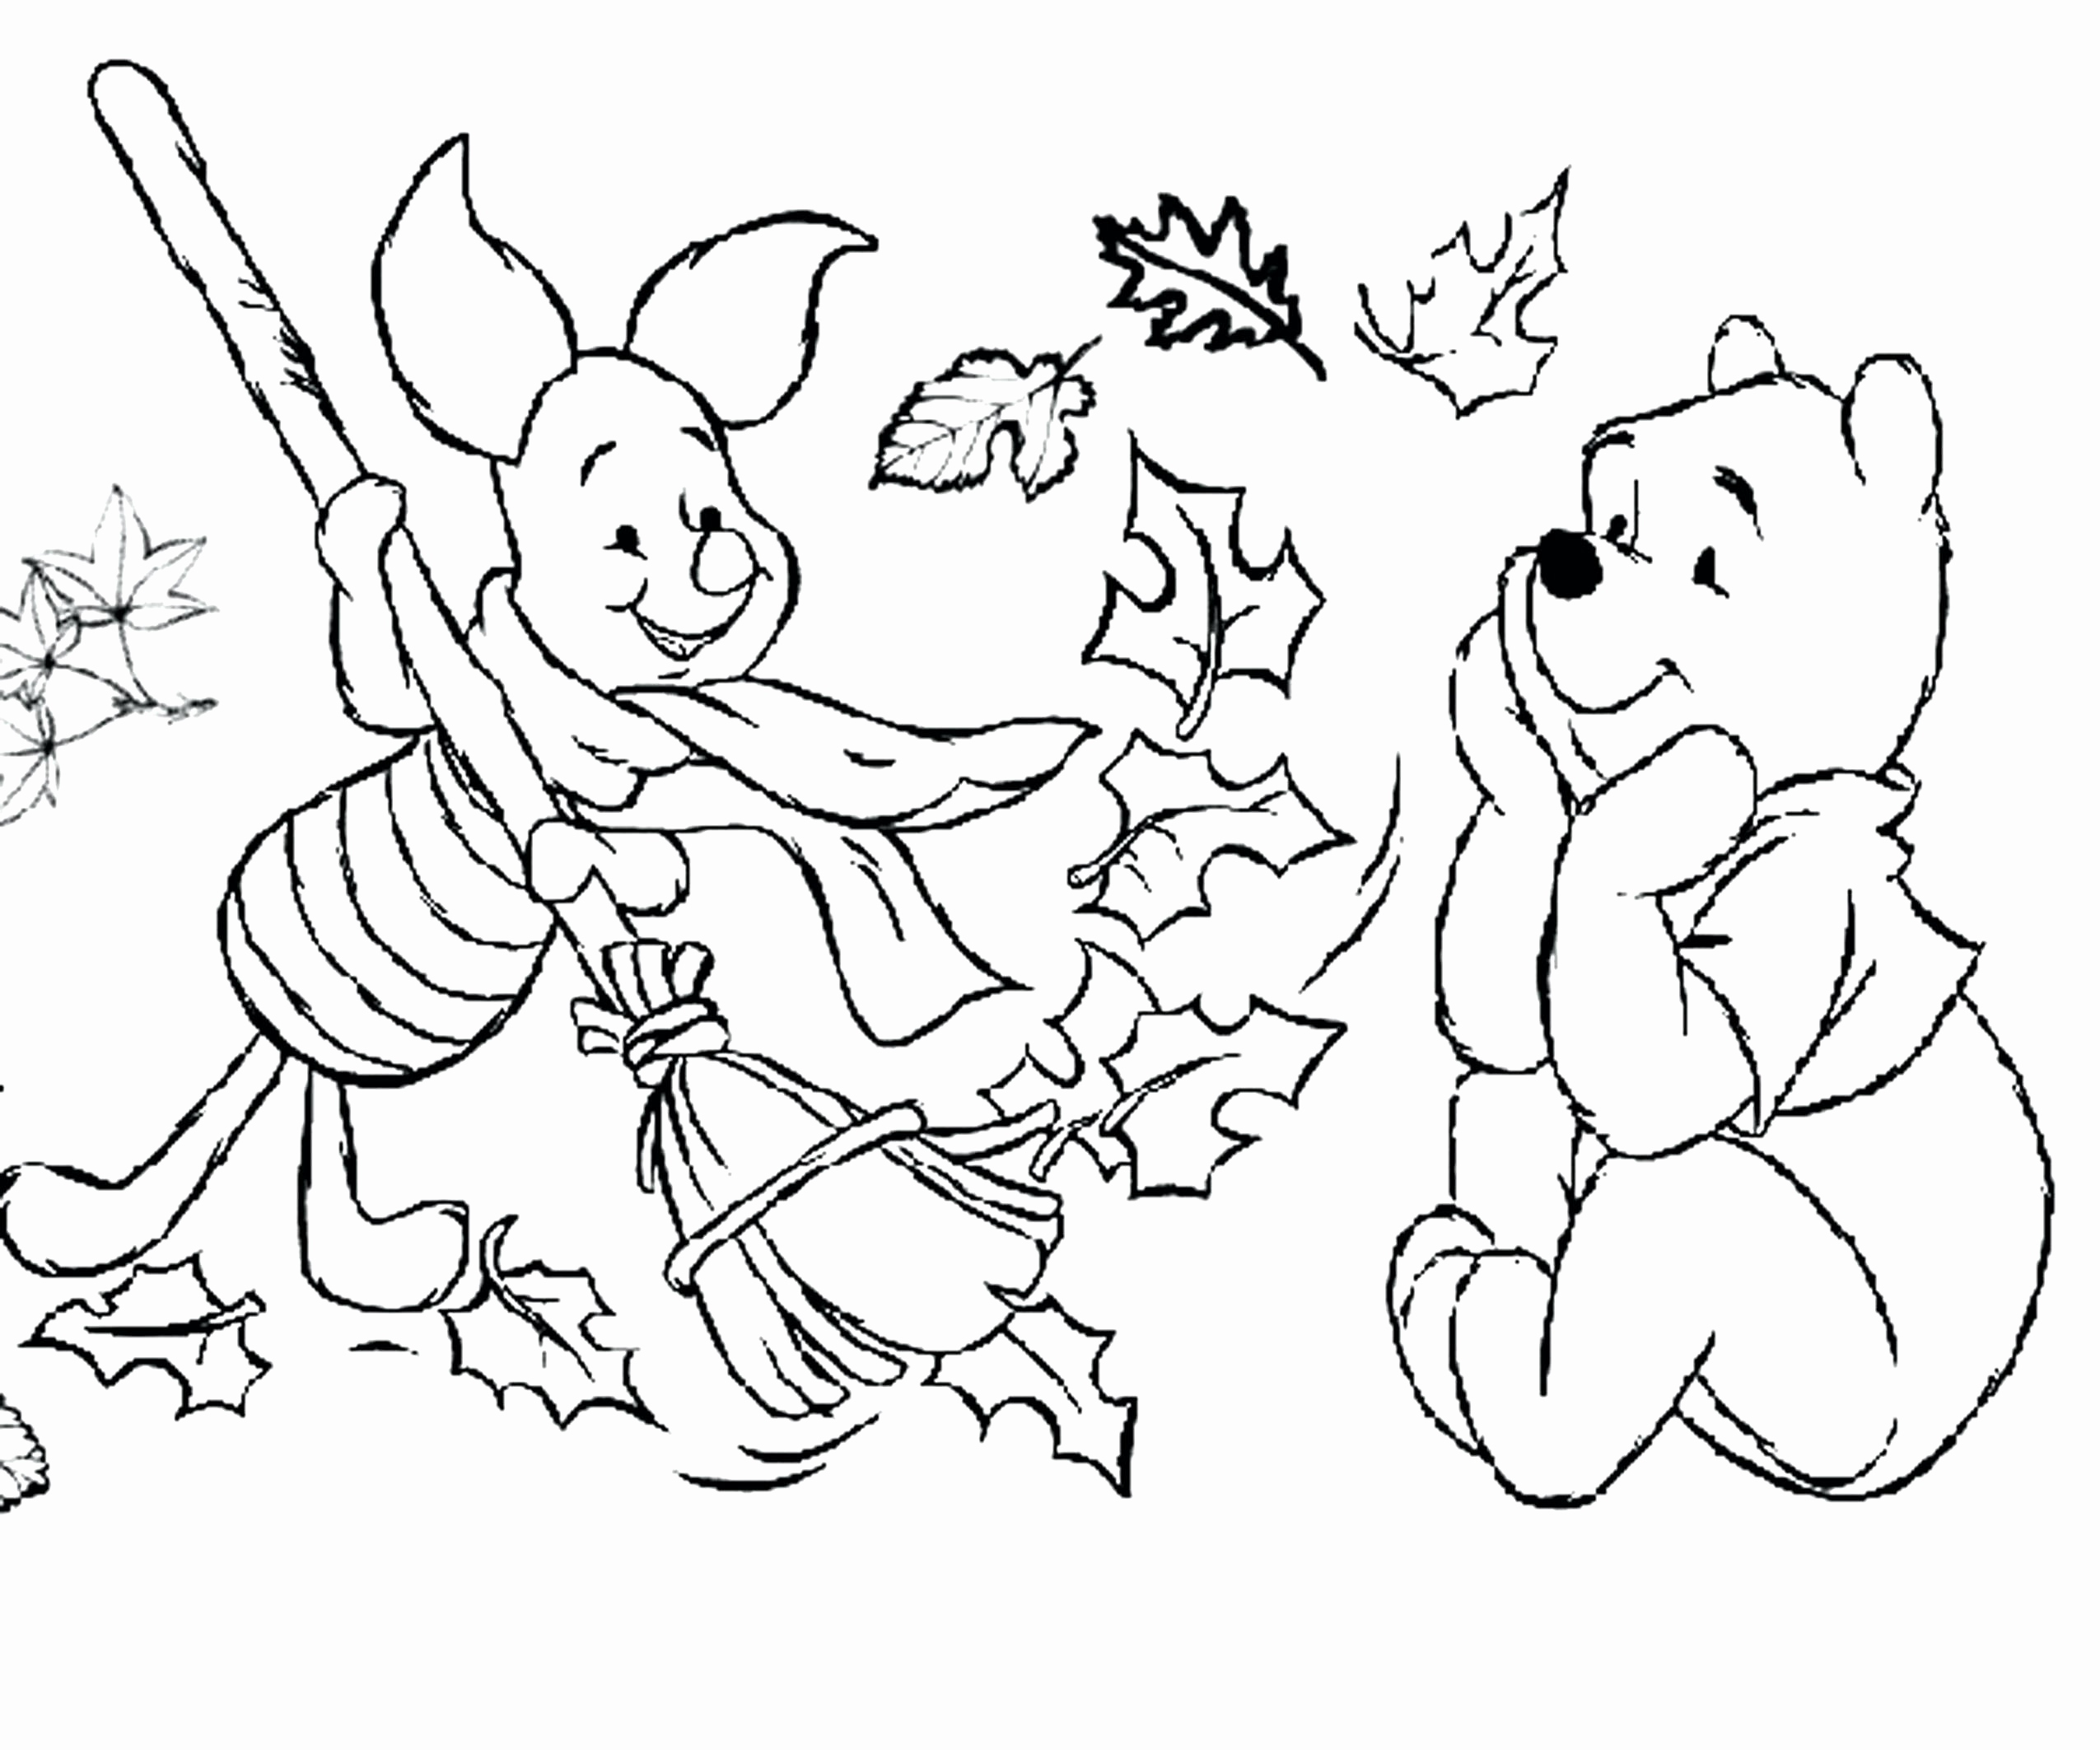 Mia and Me Malvorlagen Genial Mia and Me Coloring Pages Awesome Elegant Ausmalbilder Mia and Me